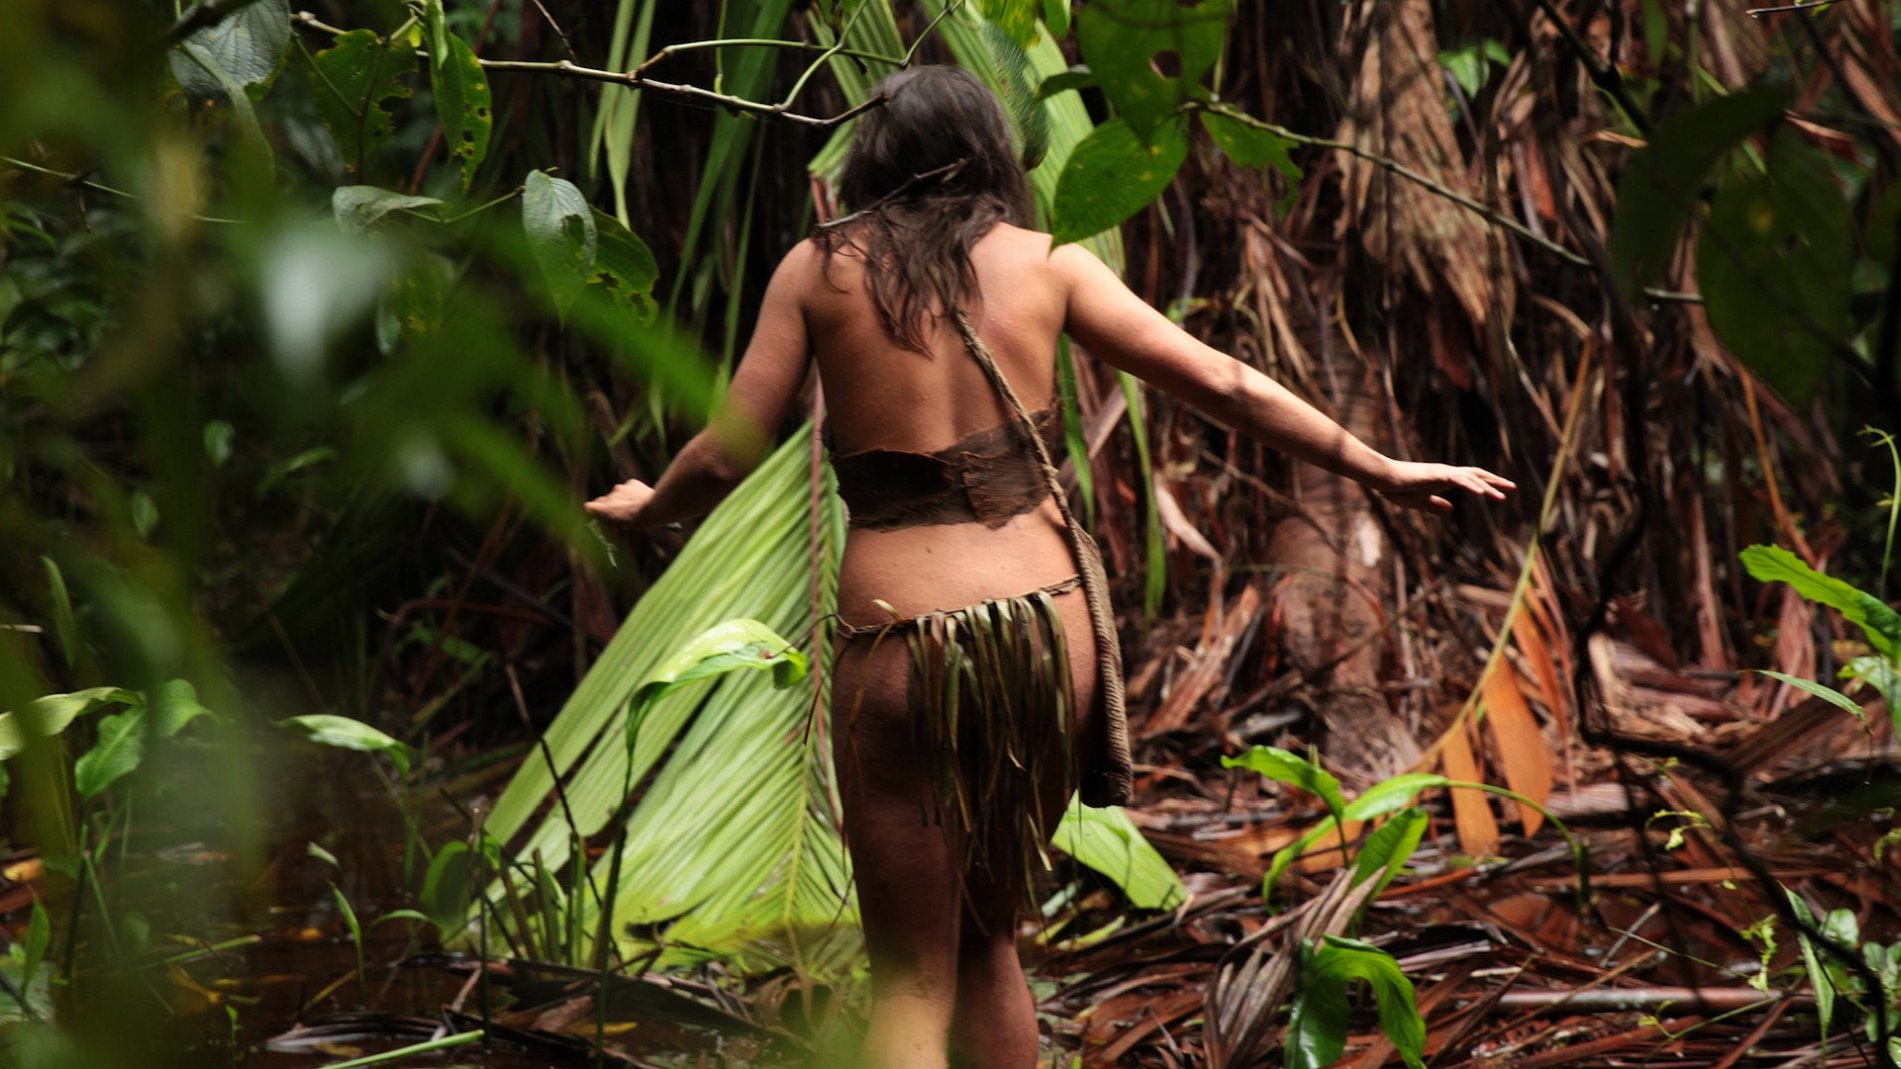 Campbell triumphs on Naked and Afraid